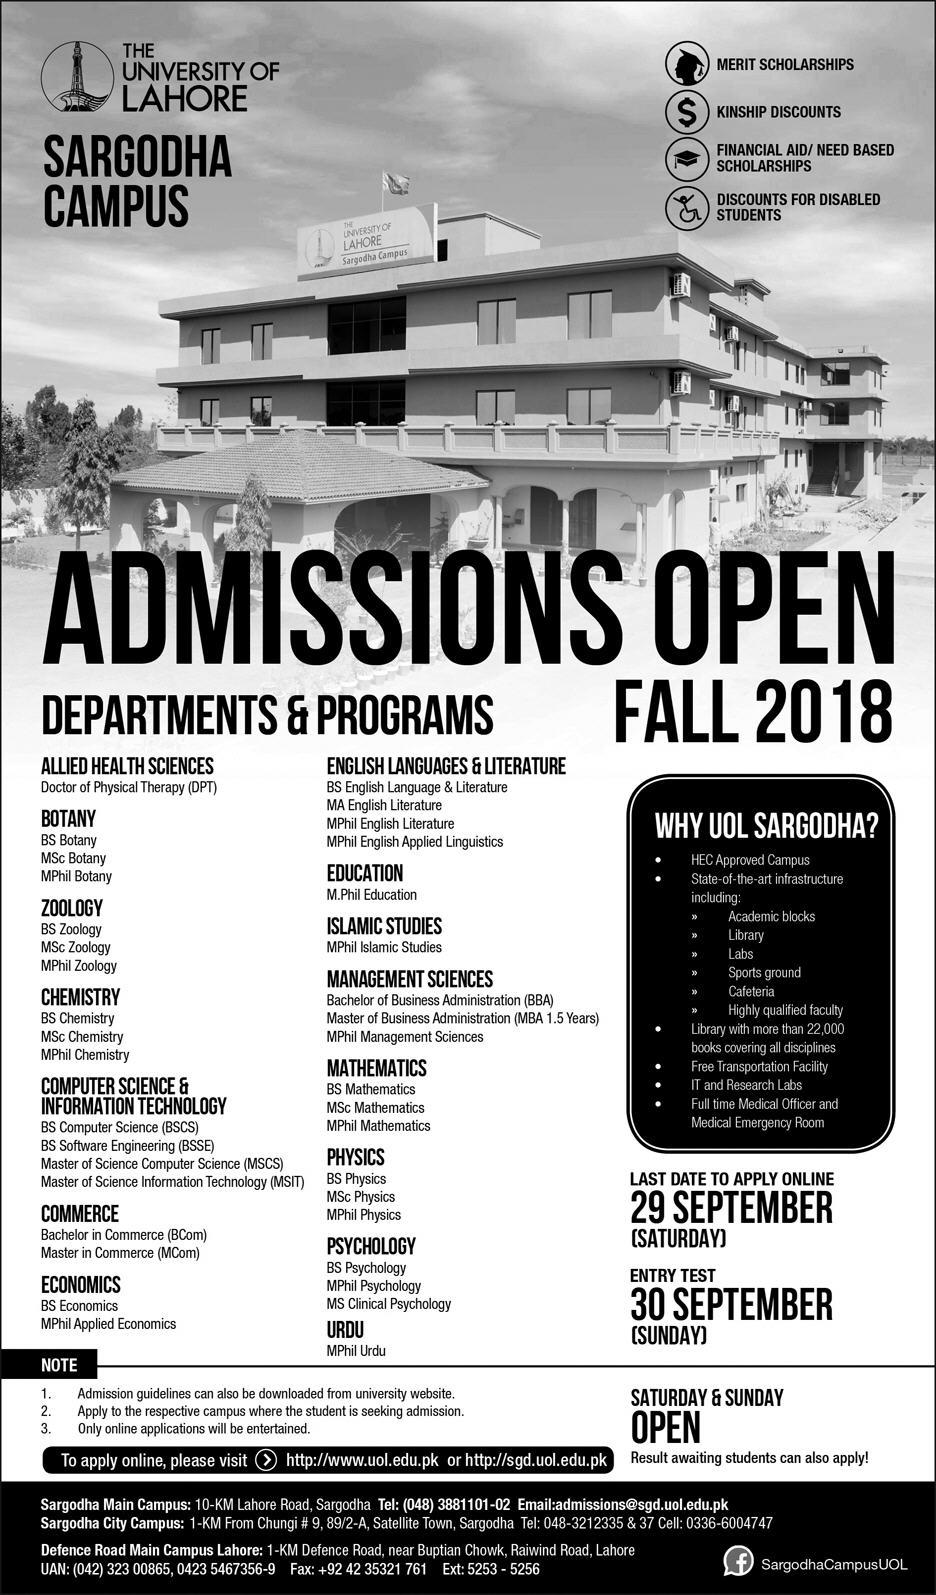 Admission Open in The University of Lahore Sargodha Campus 09 Sep 2018